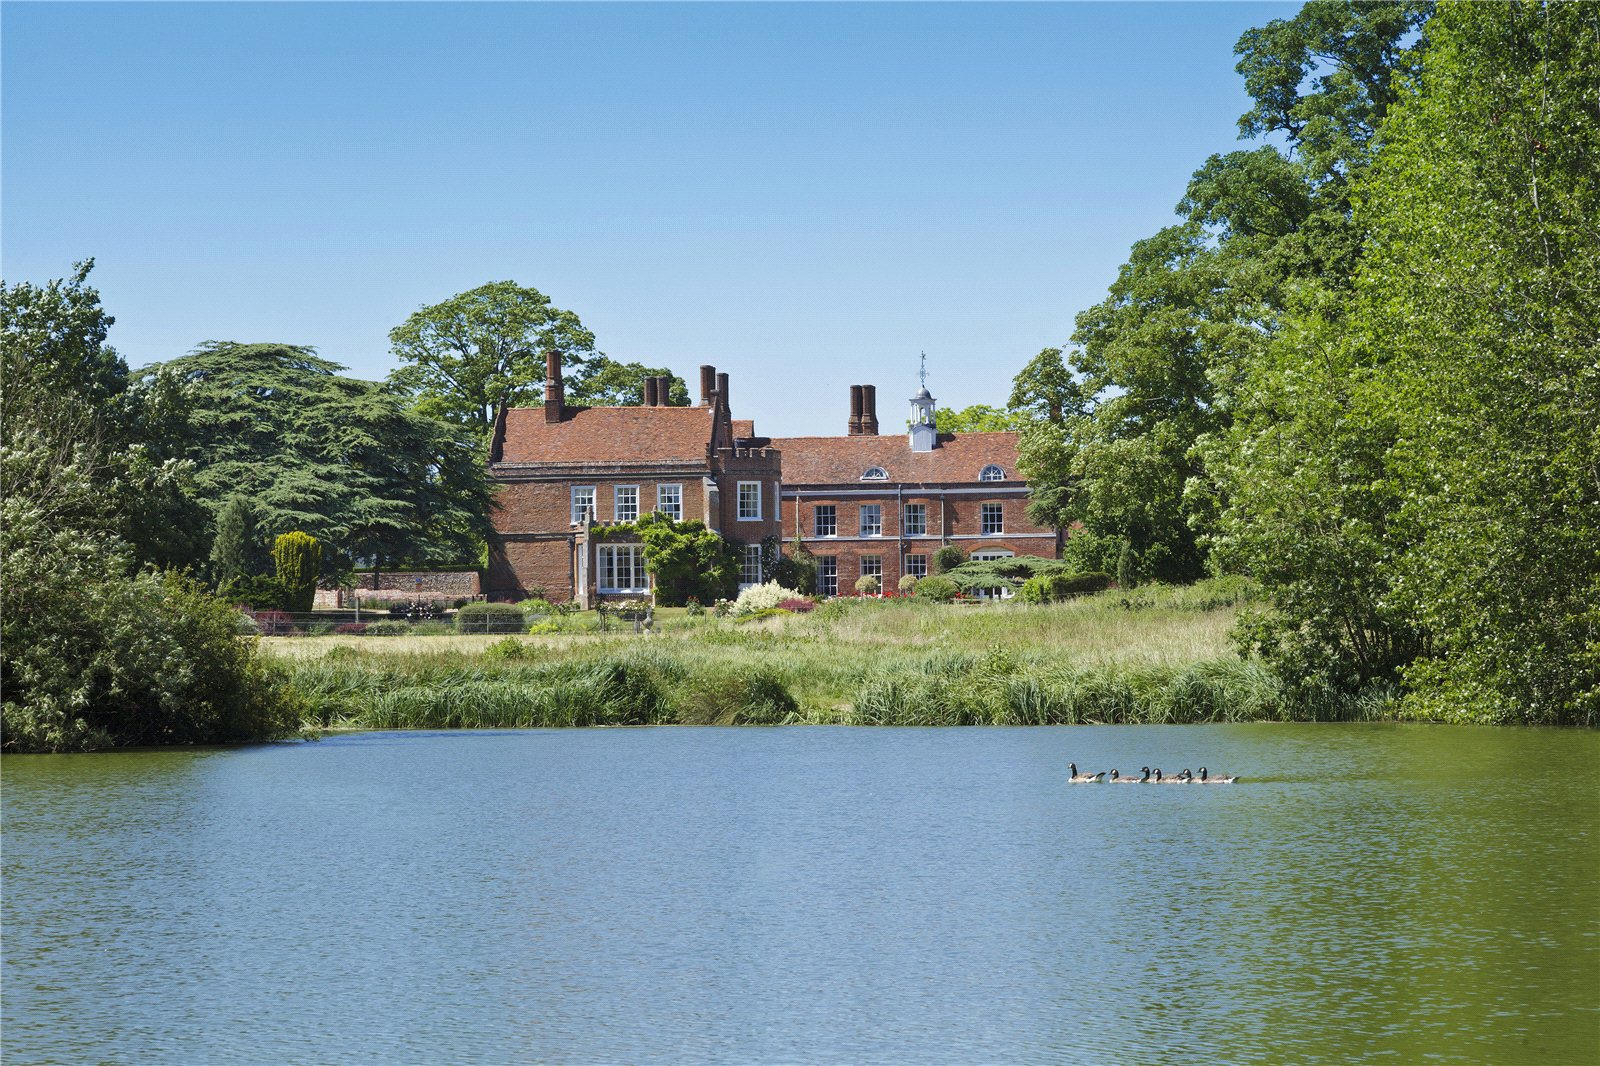 Villa per Vendita alle ore Spains Hall (Whole), Spains Hall Road, Finchingfield, Essex, CM7 Finchingfield, Inghilterra